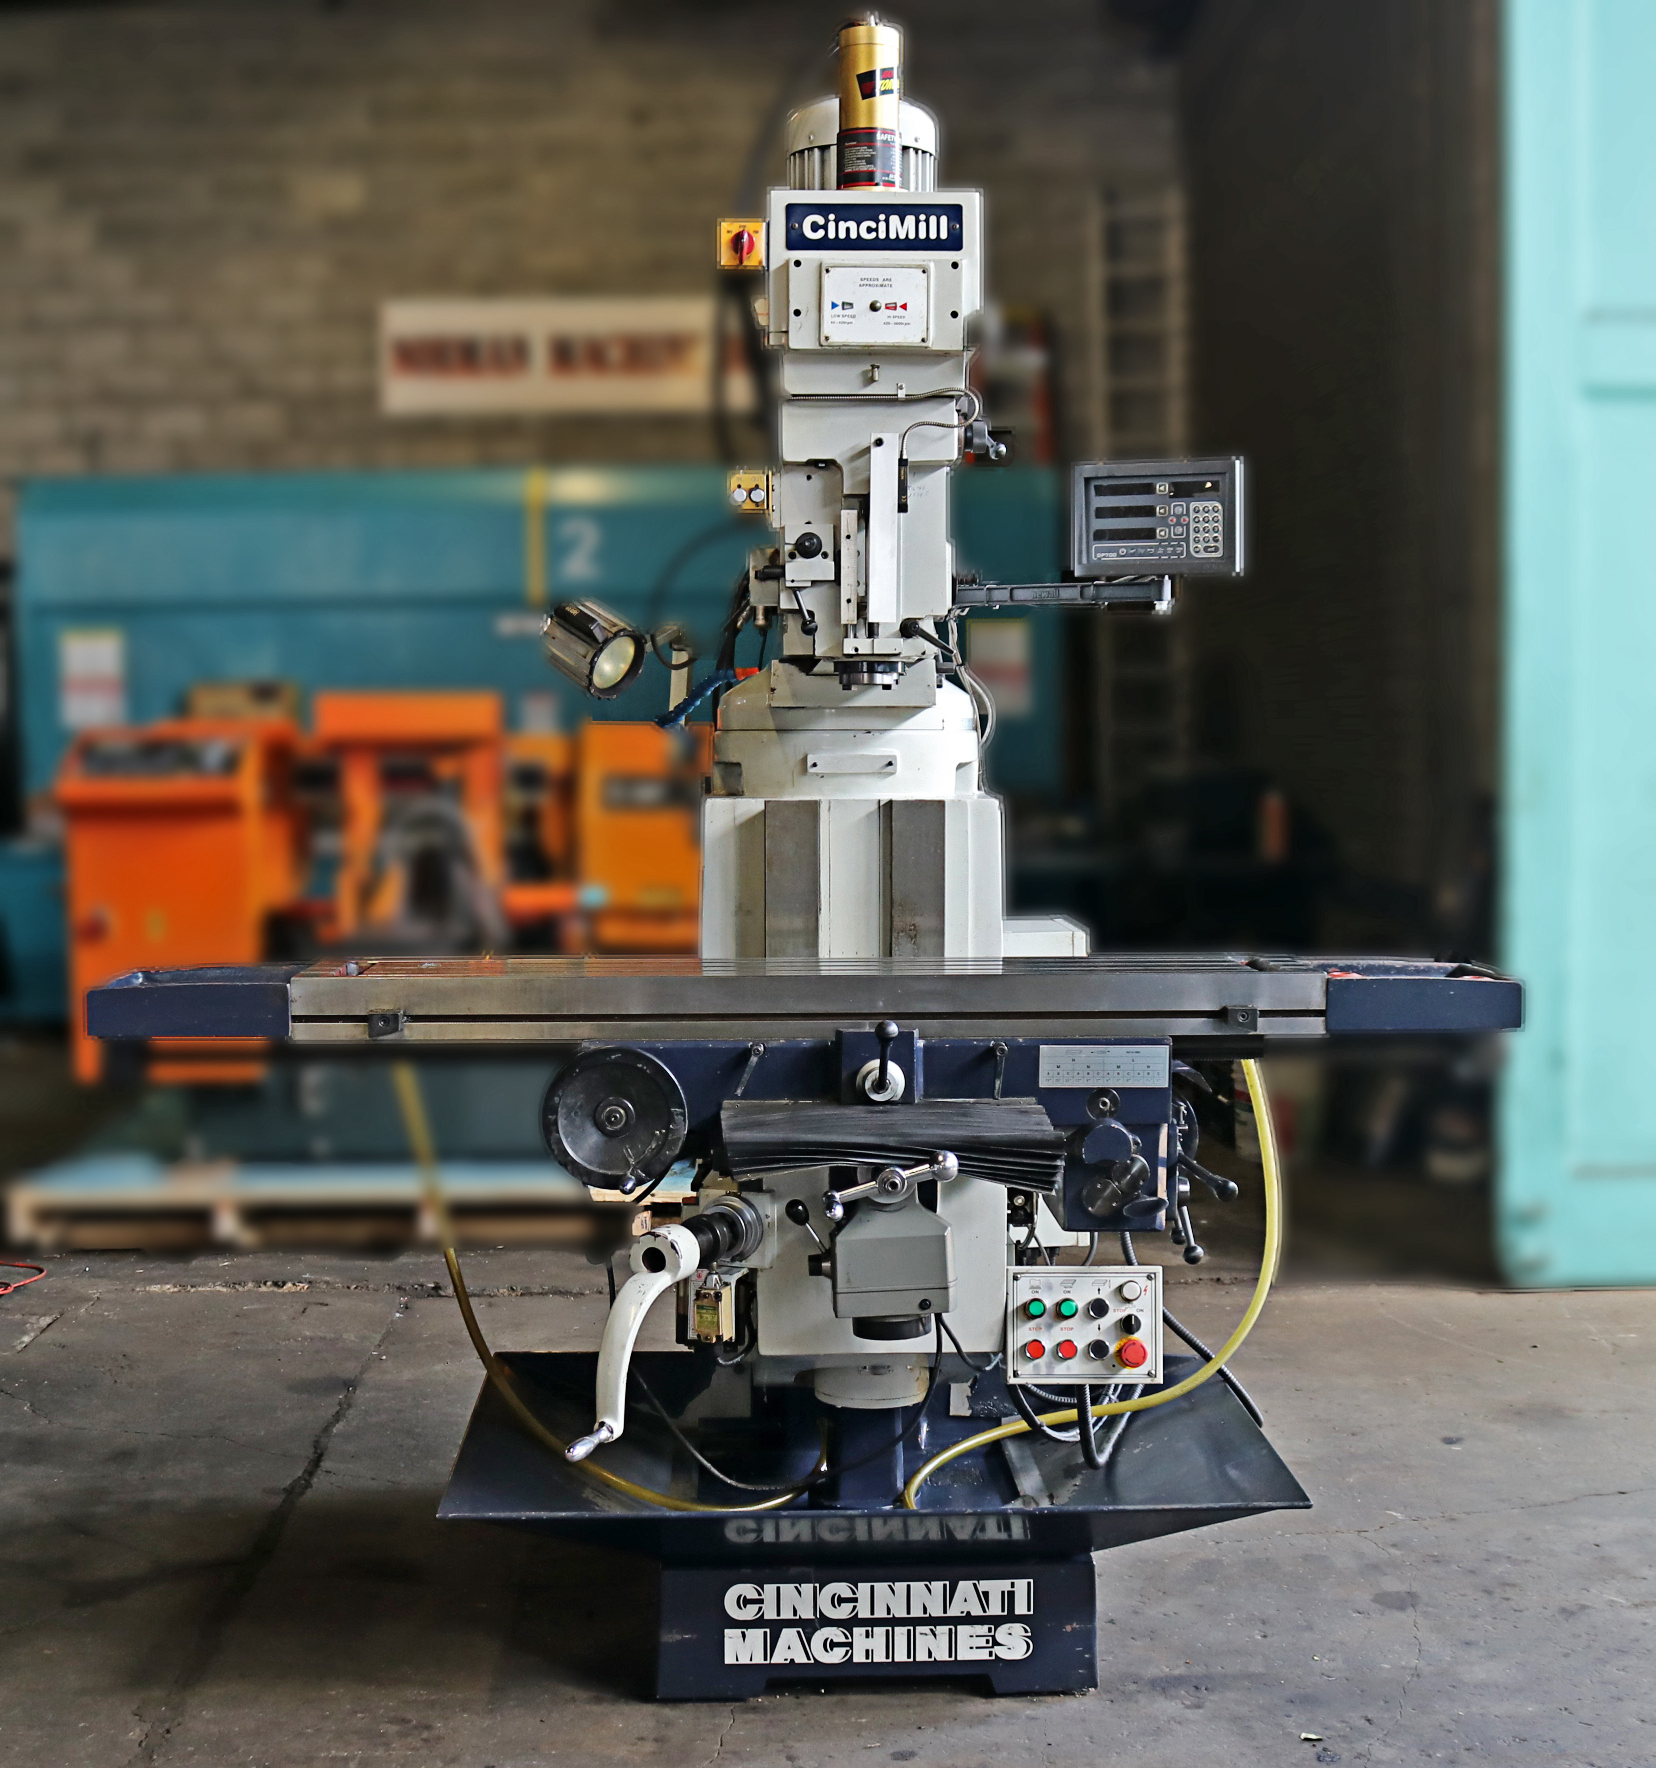 Cincinnati Machines 12″ x 59″ Variable Speed Vertical Turret Milling  Machine, Cincimill